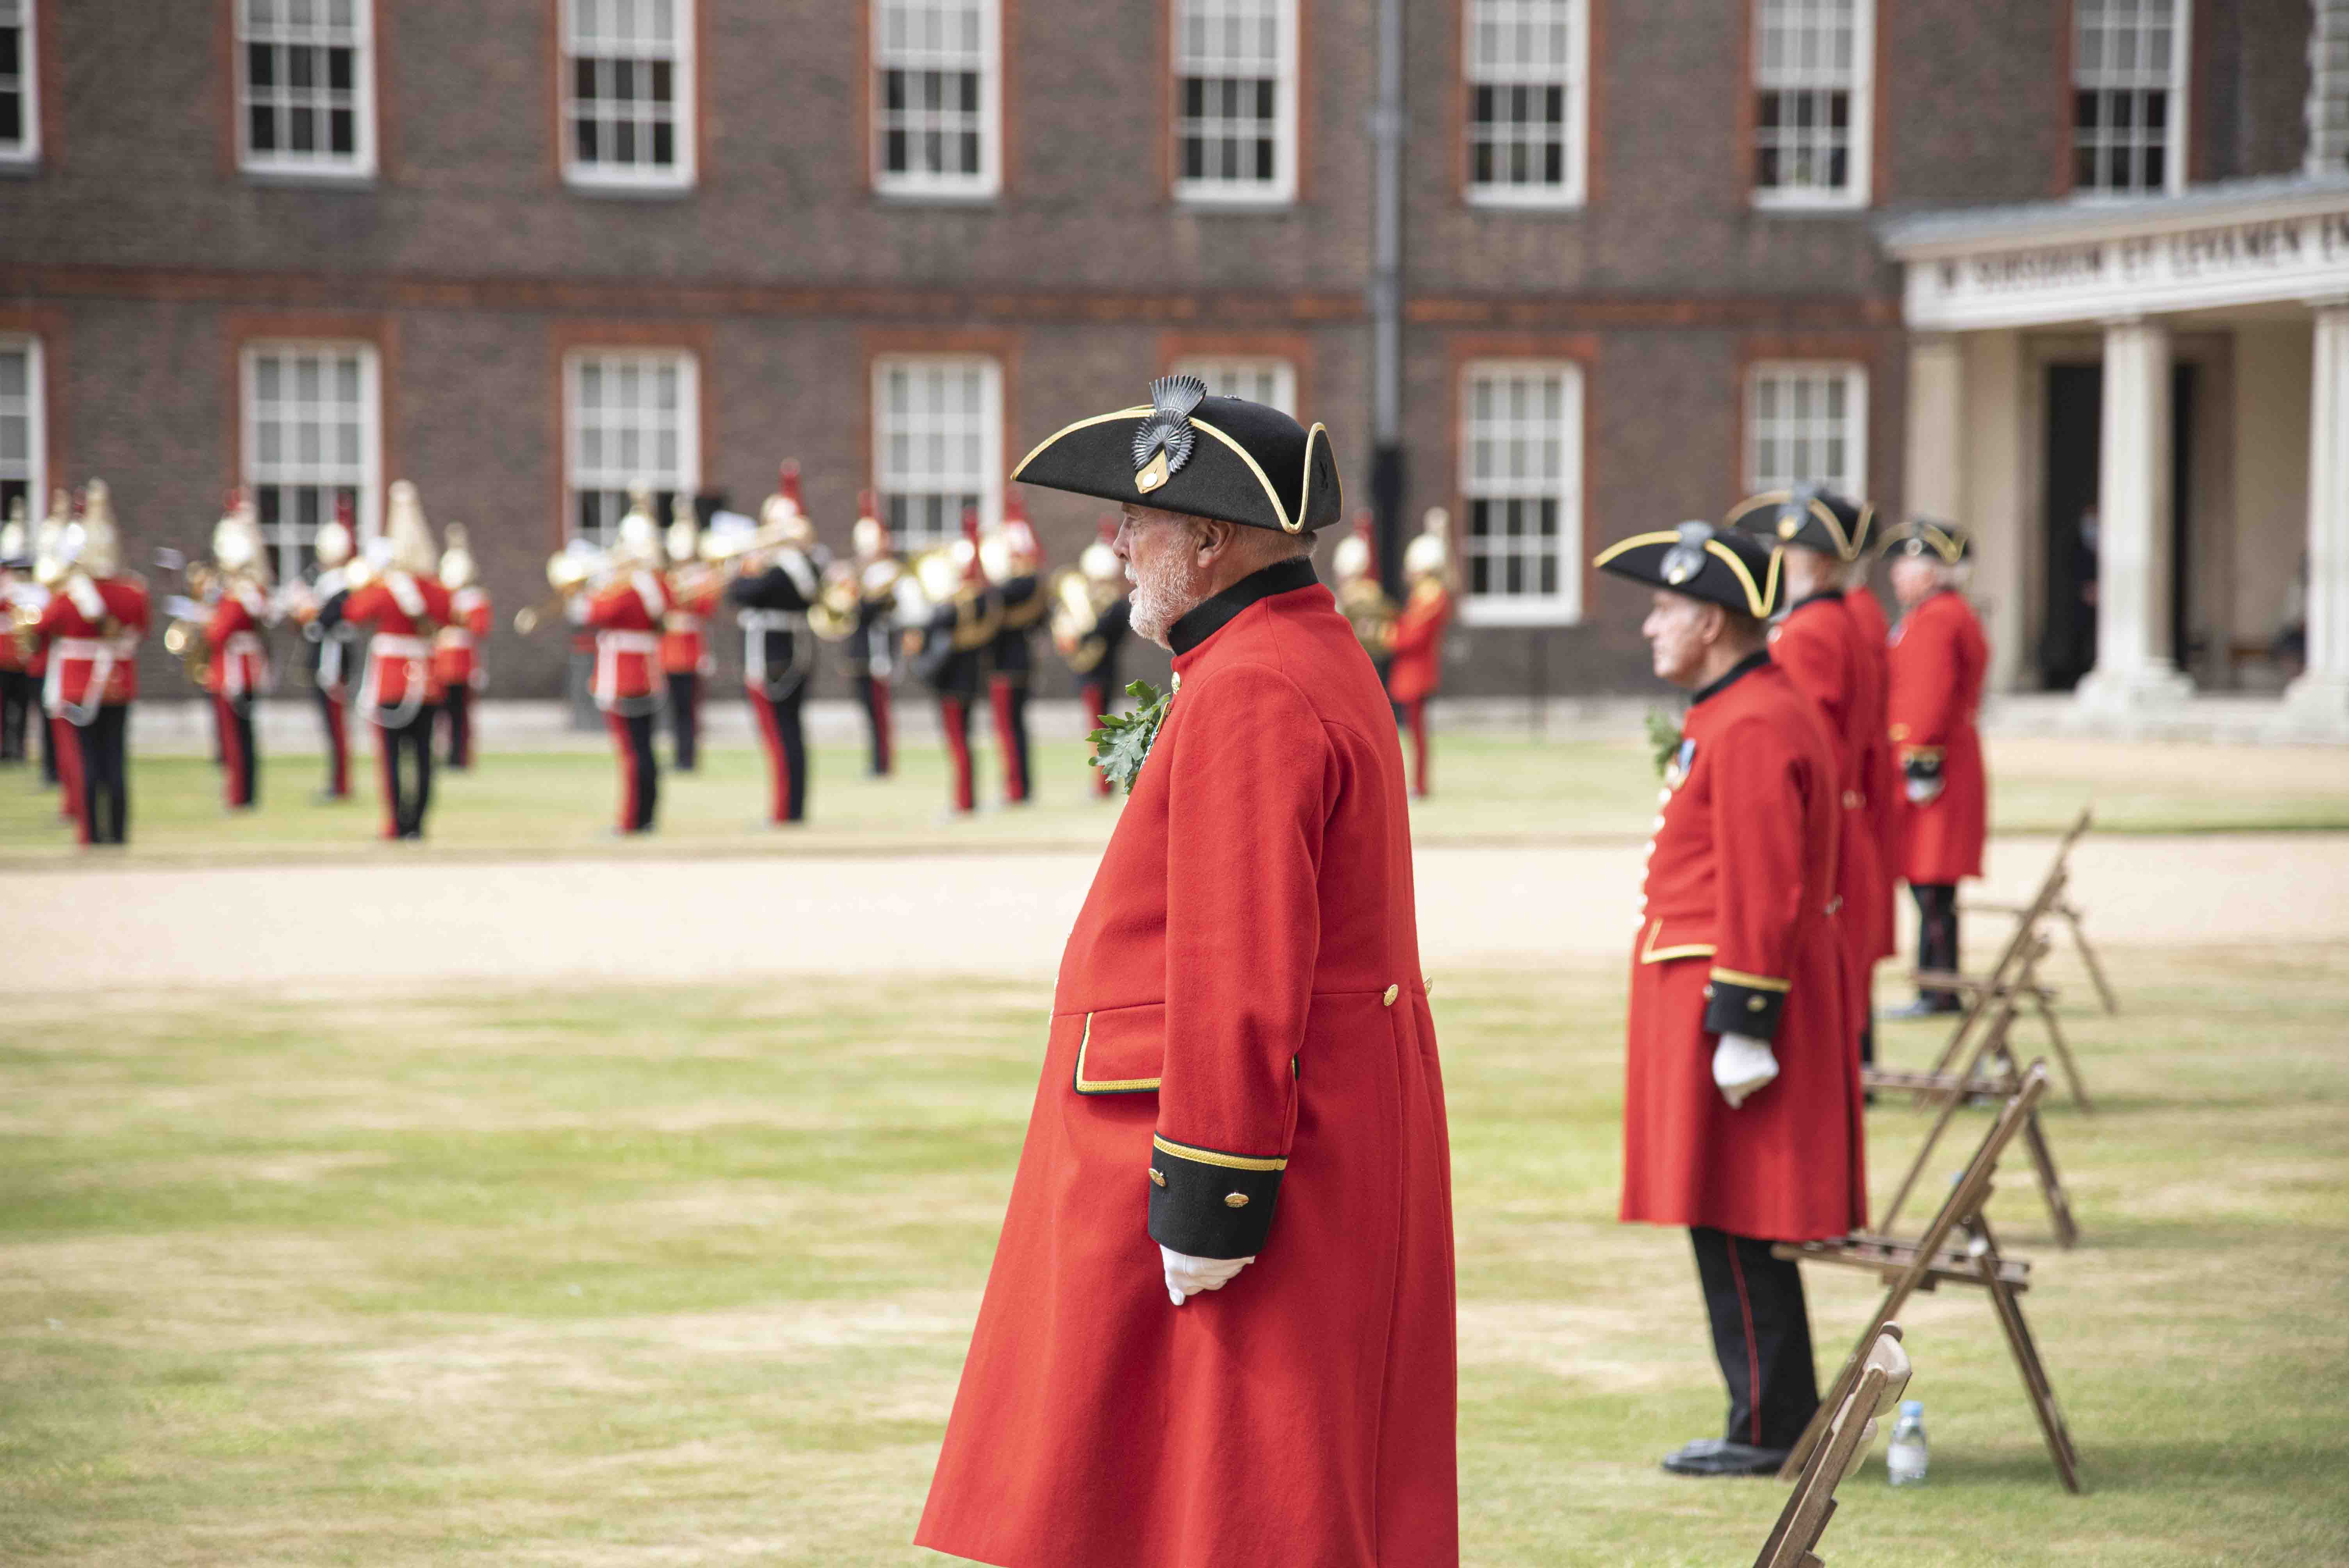 A Pensioner on parade at Founder's Day 2020 with the Household Cavalry band in the background